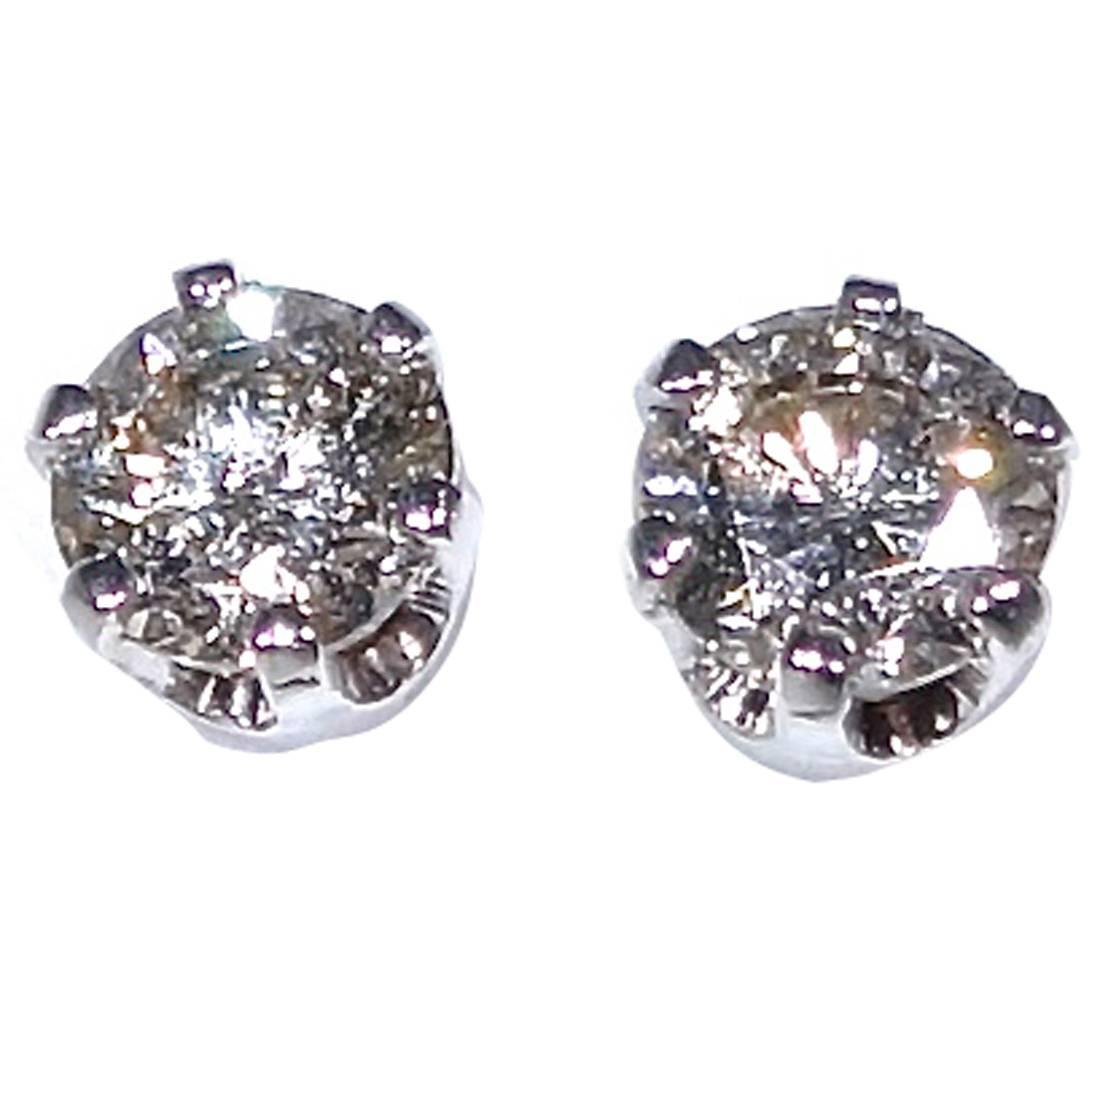 1 carat stud earrings sale 1 carat gold stud earrings for sale at 1stdibs 6748